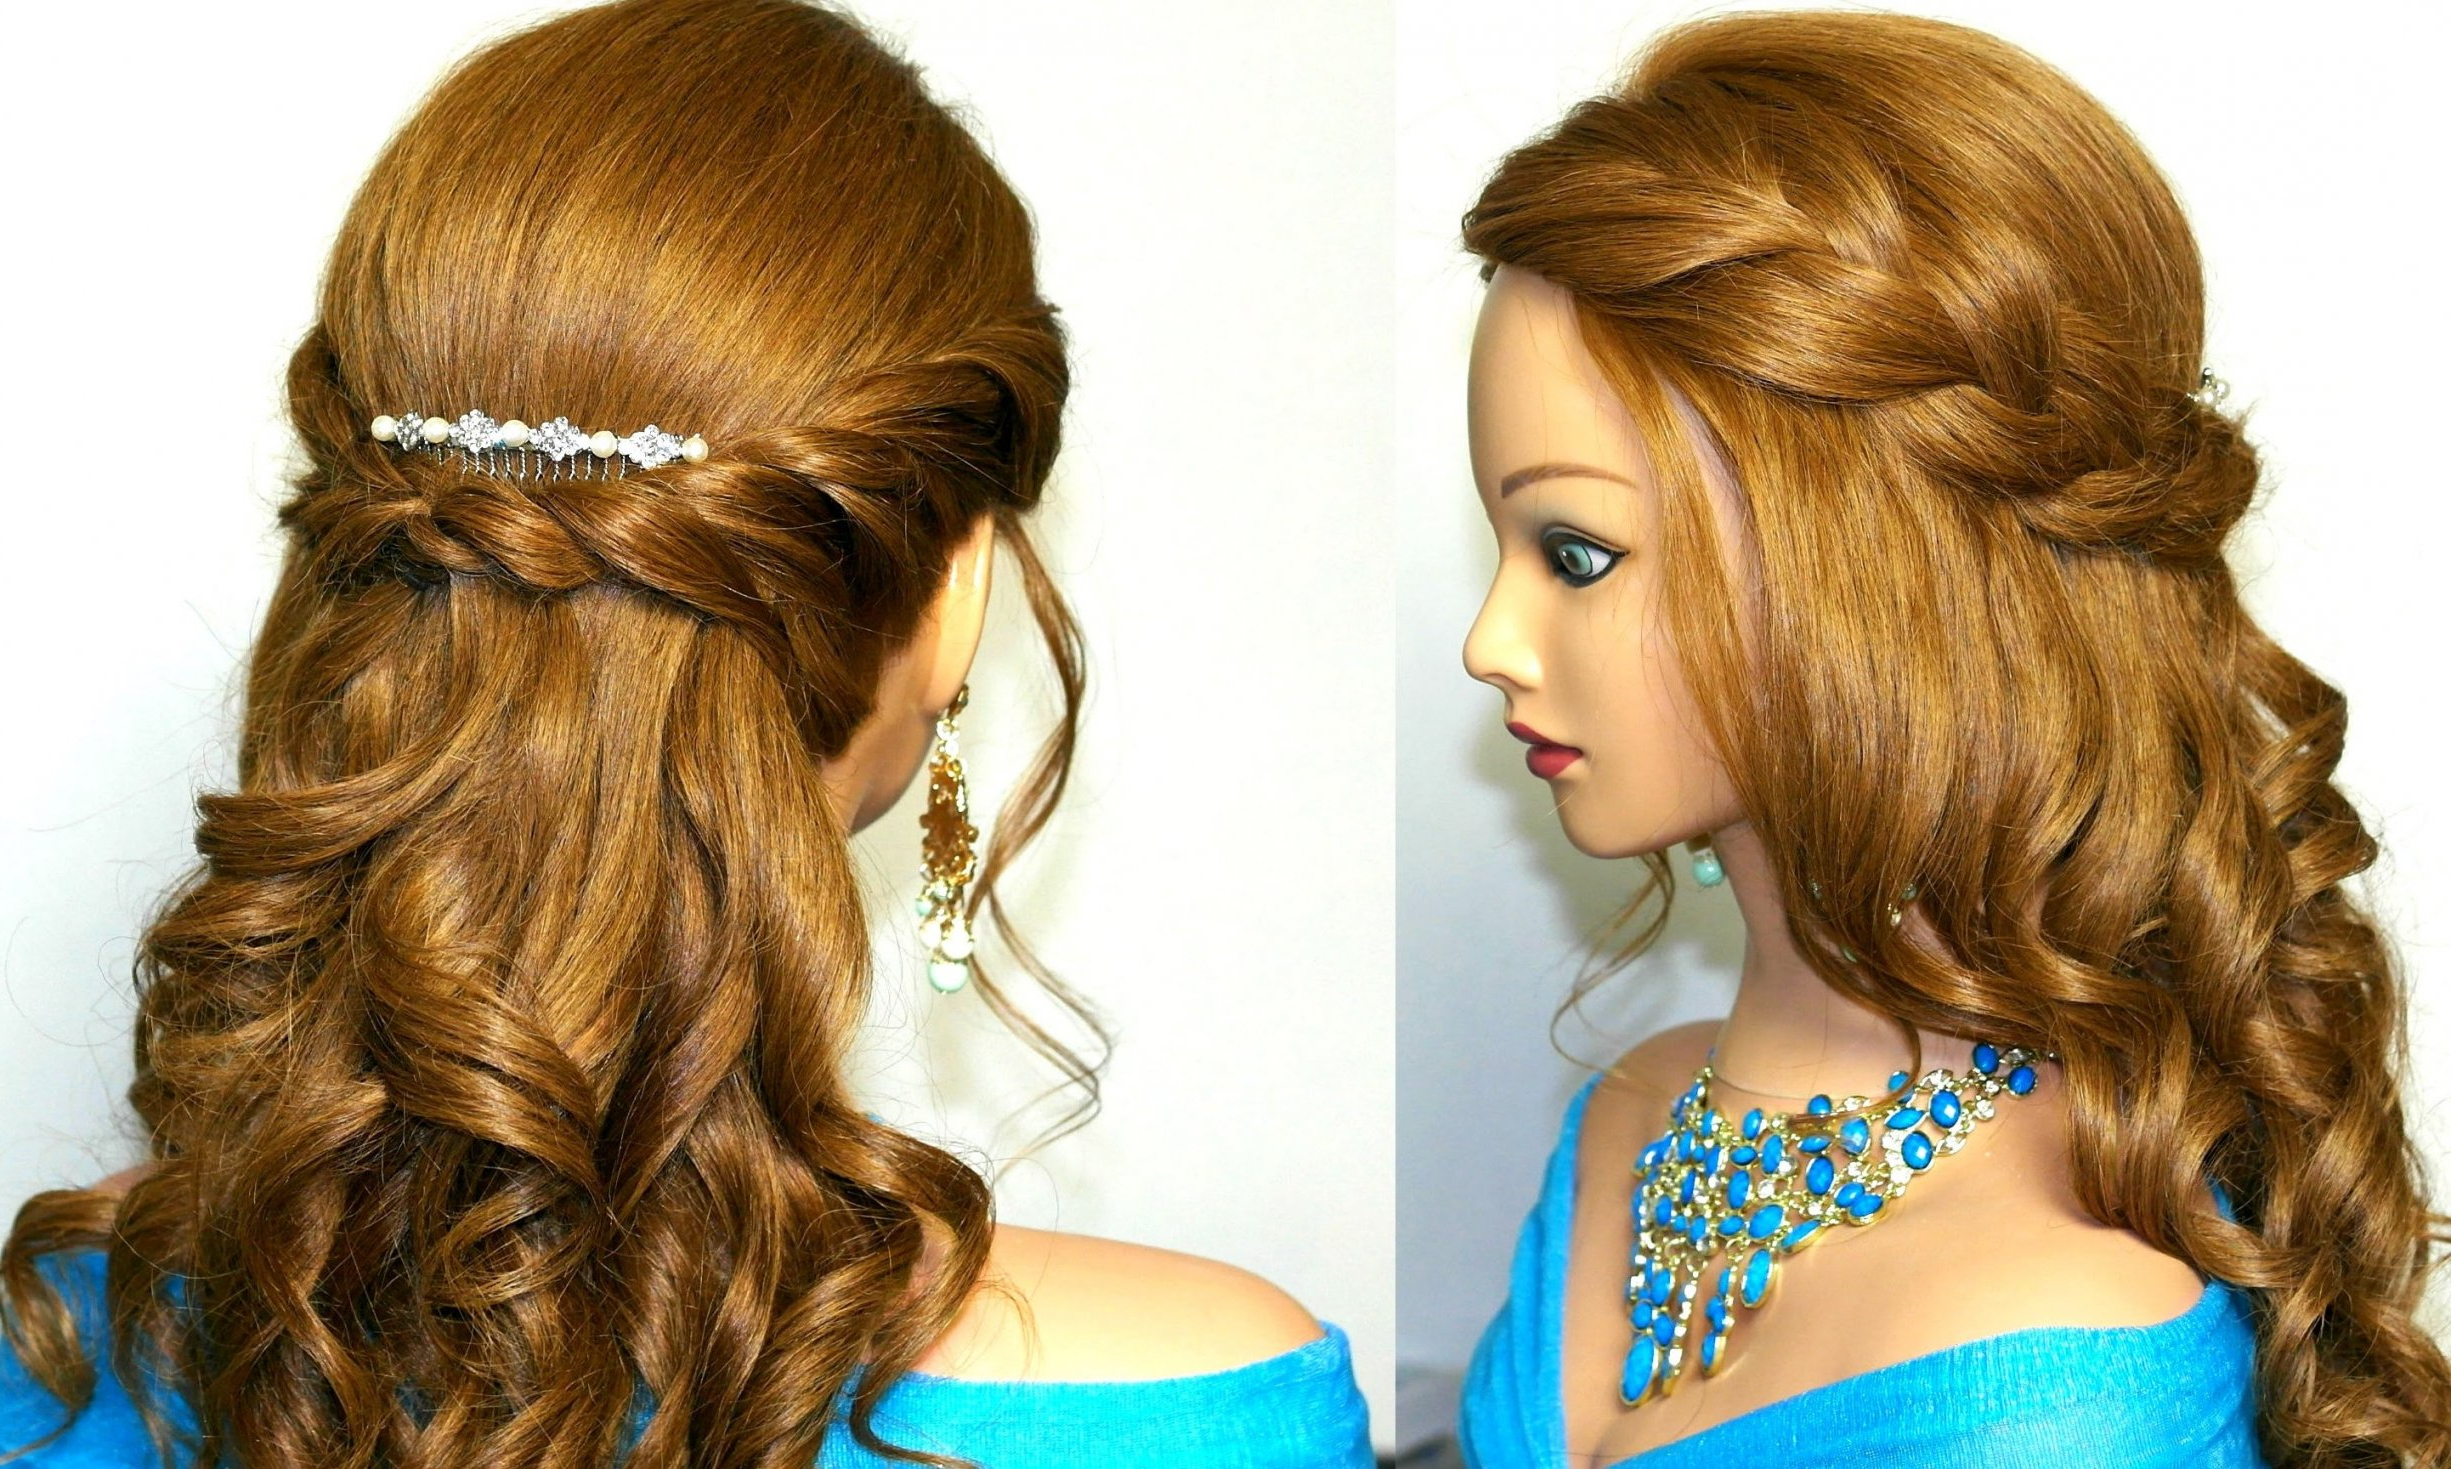 Long Curly Hairstyles Prom » Best Hairstyles & Haircuts For All Hair Inside Well Liked Curly Medium Hairstyles For Prom (Gallery 4 of 20)